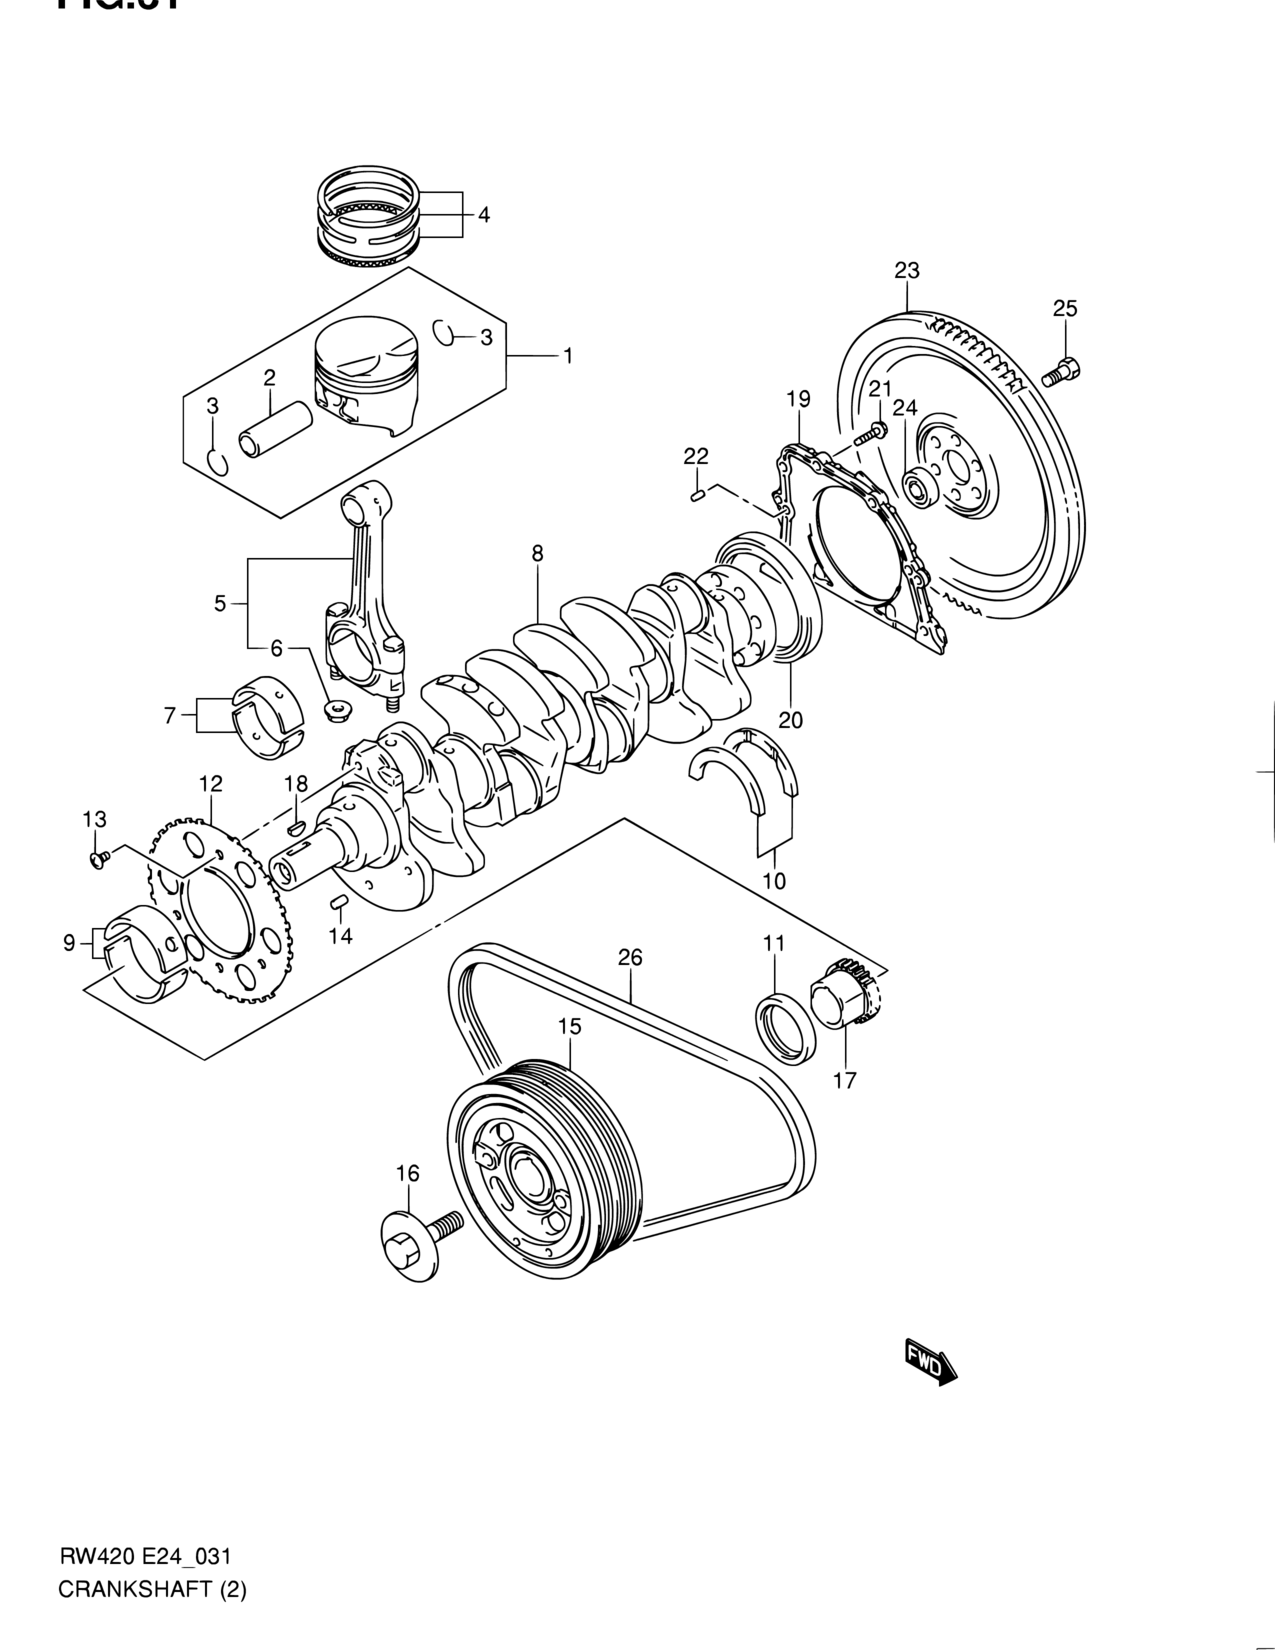 hight resolution of parts